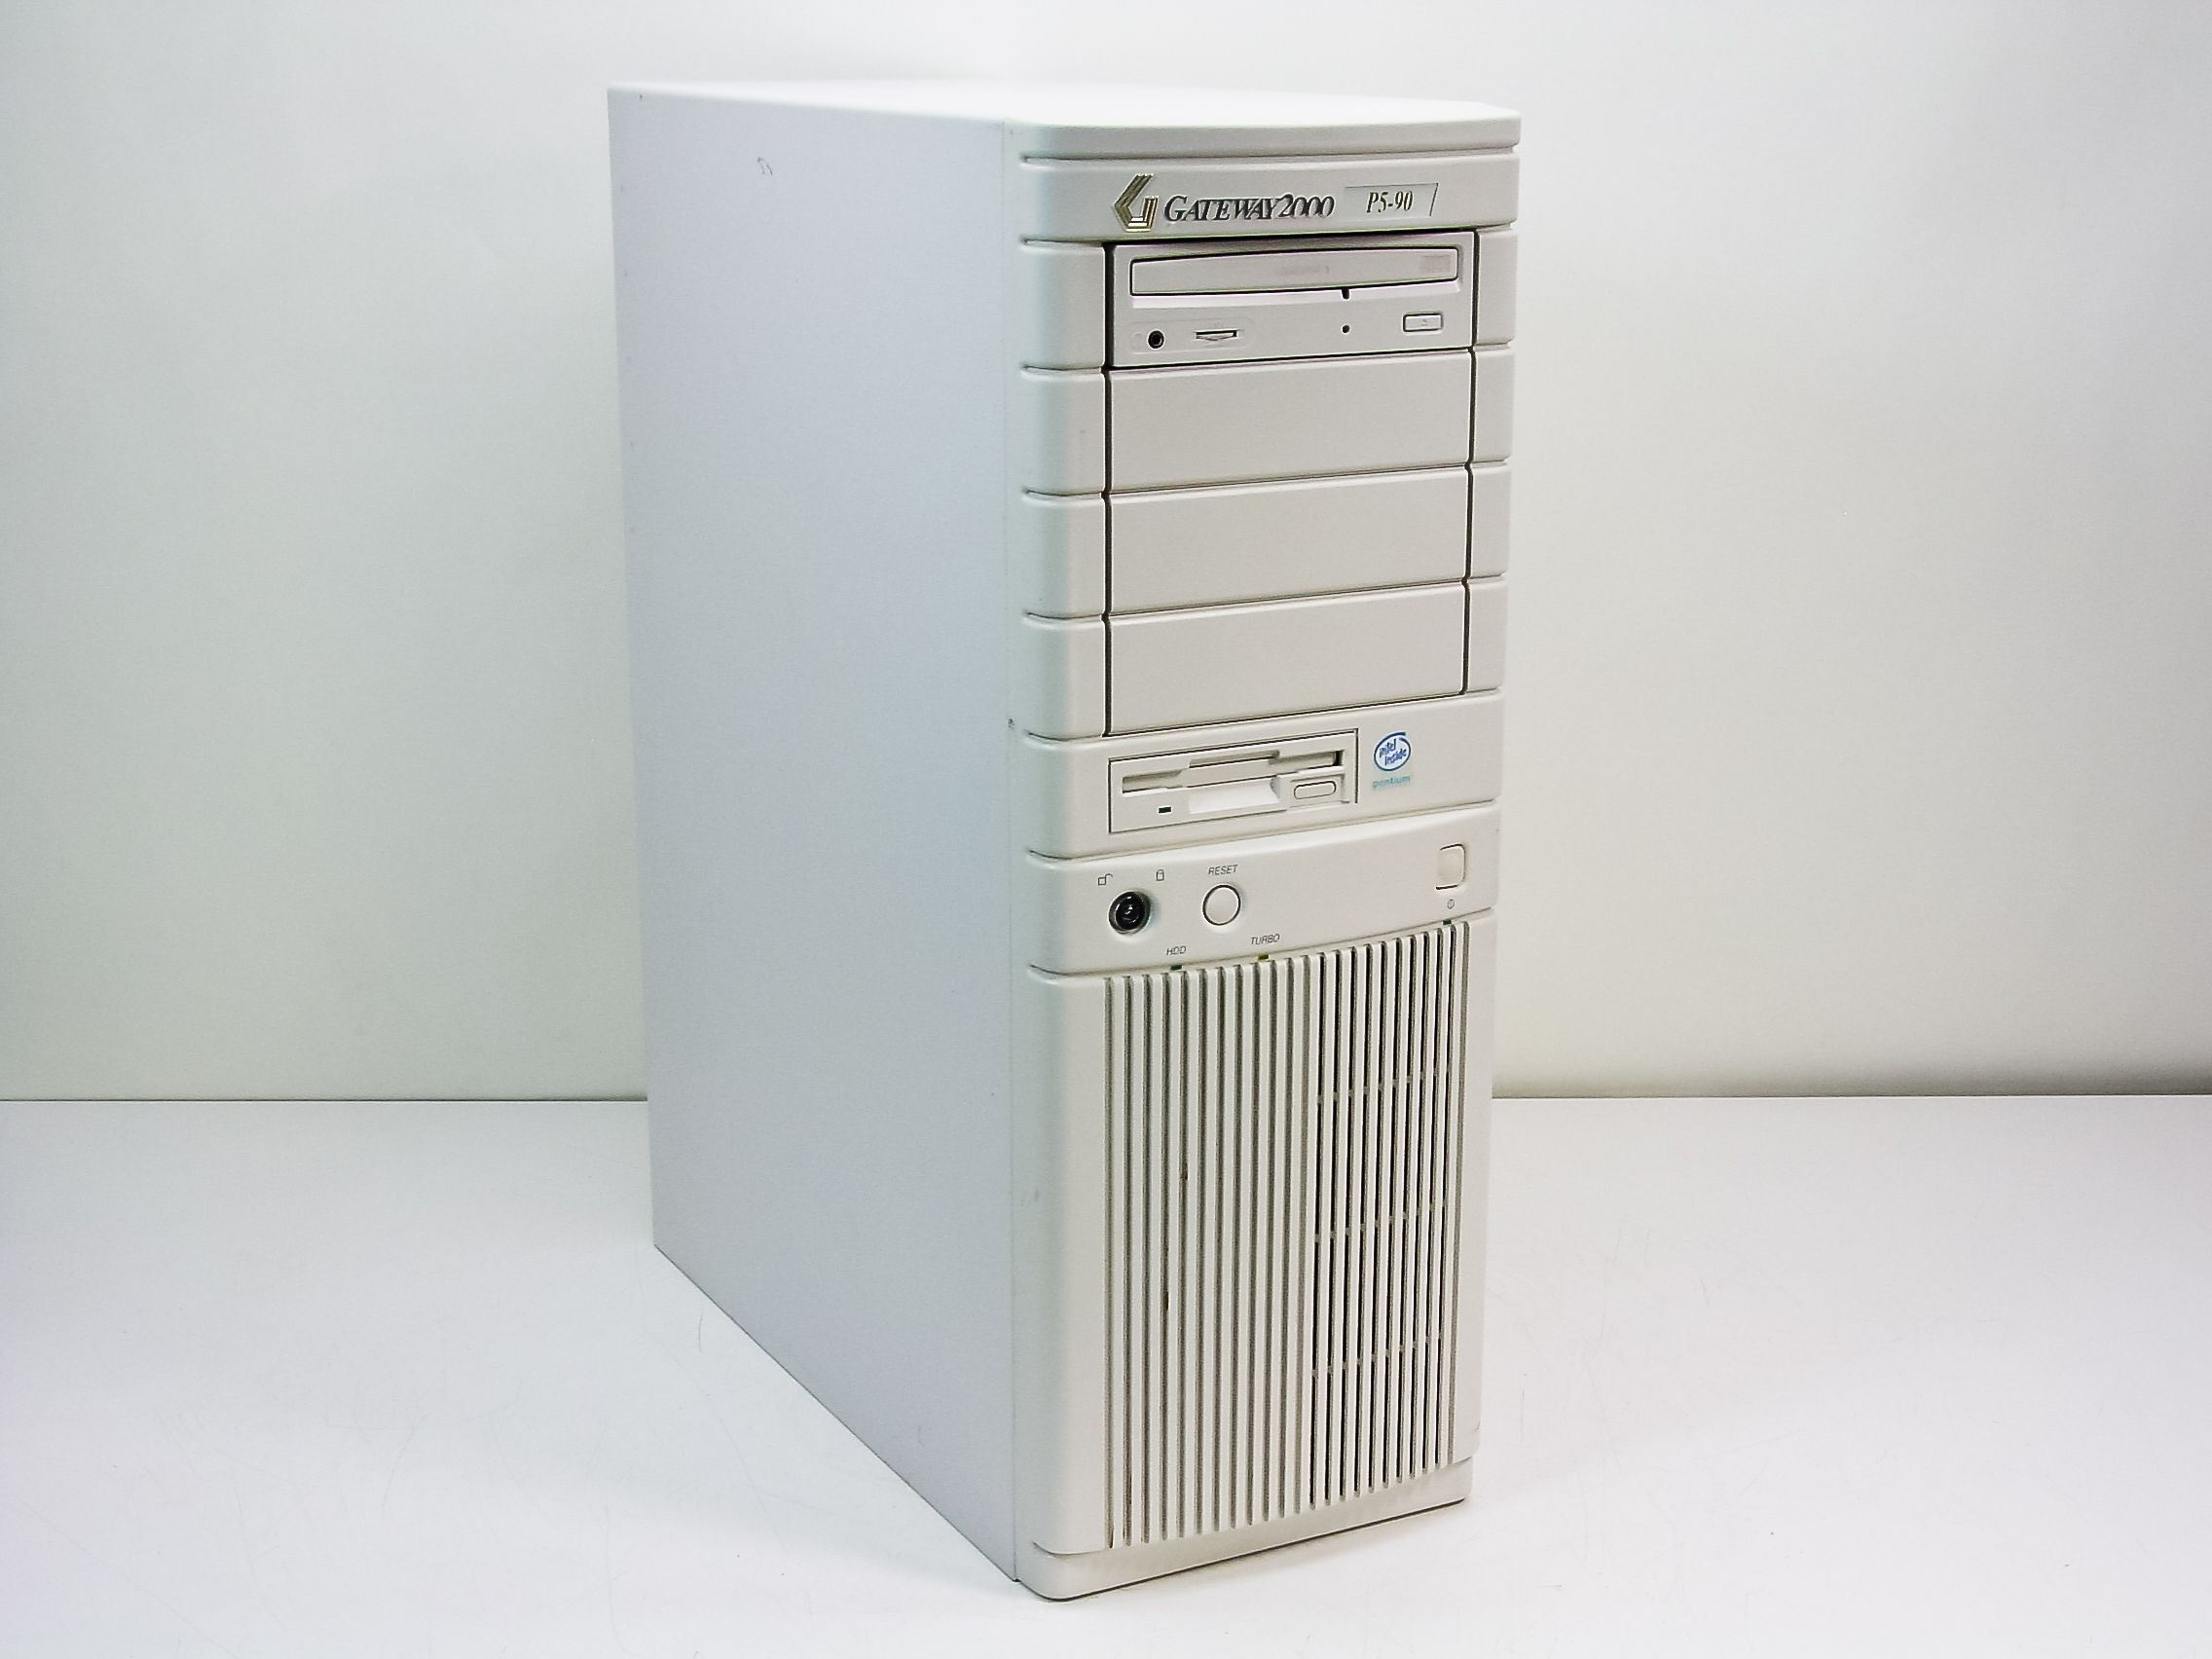 My Gateway 2000 tower looked identical to this one—except for the model number, of course.